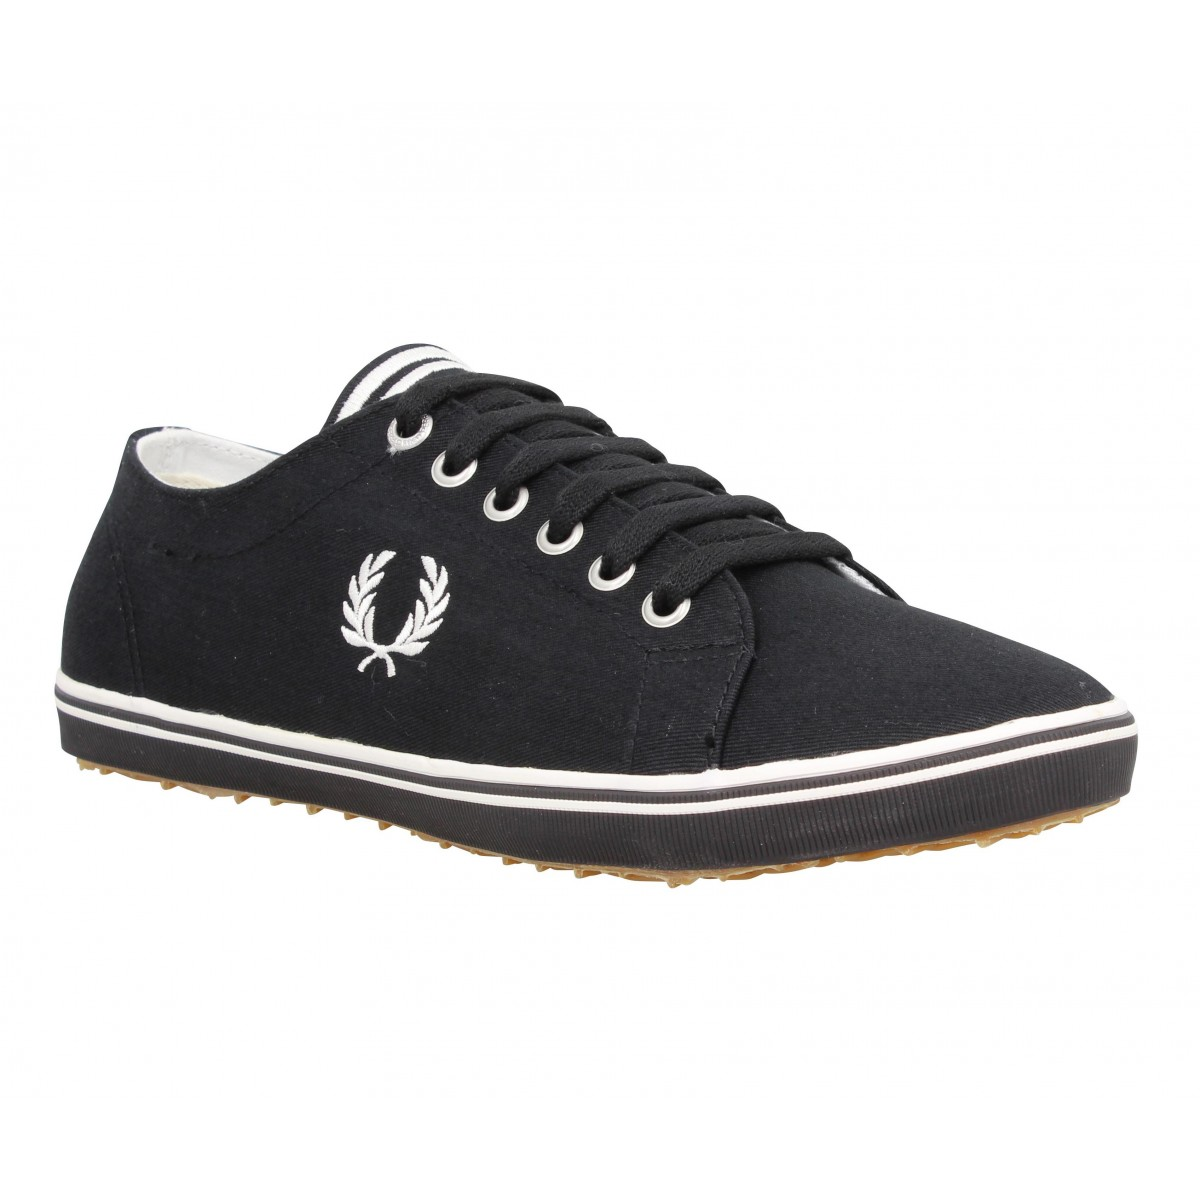 Baskets FRED PERRY Kingston toile Homme Noir + Blanc